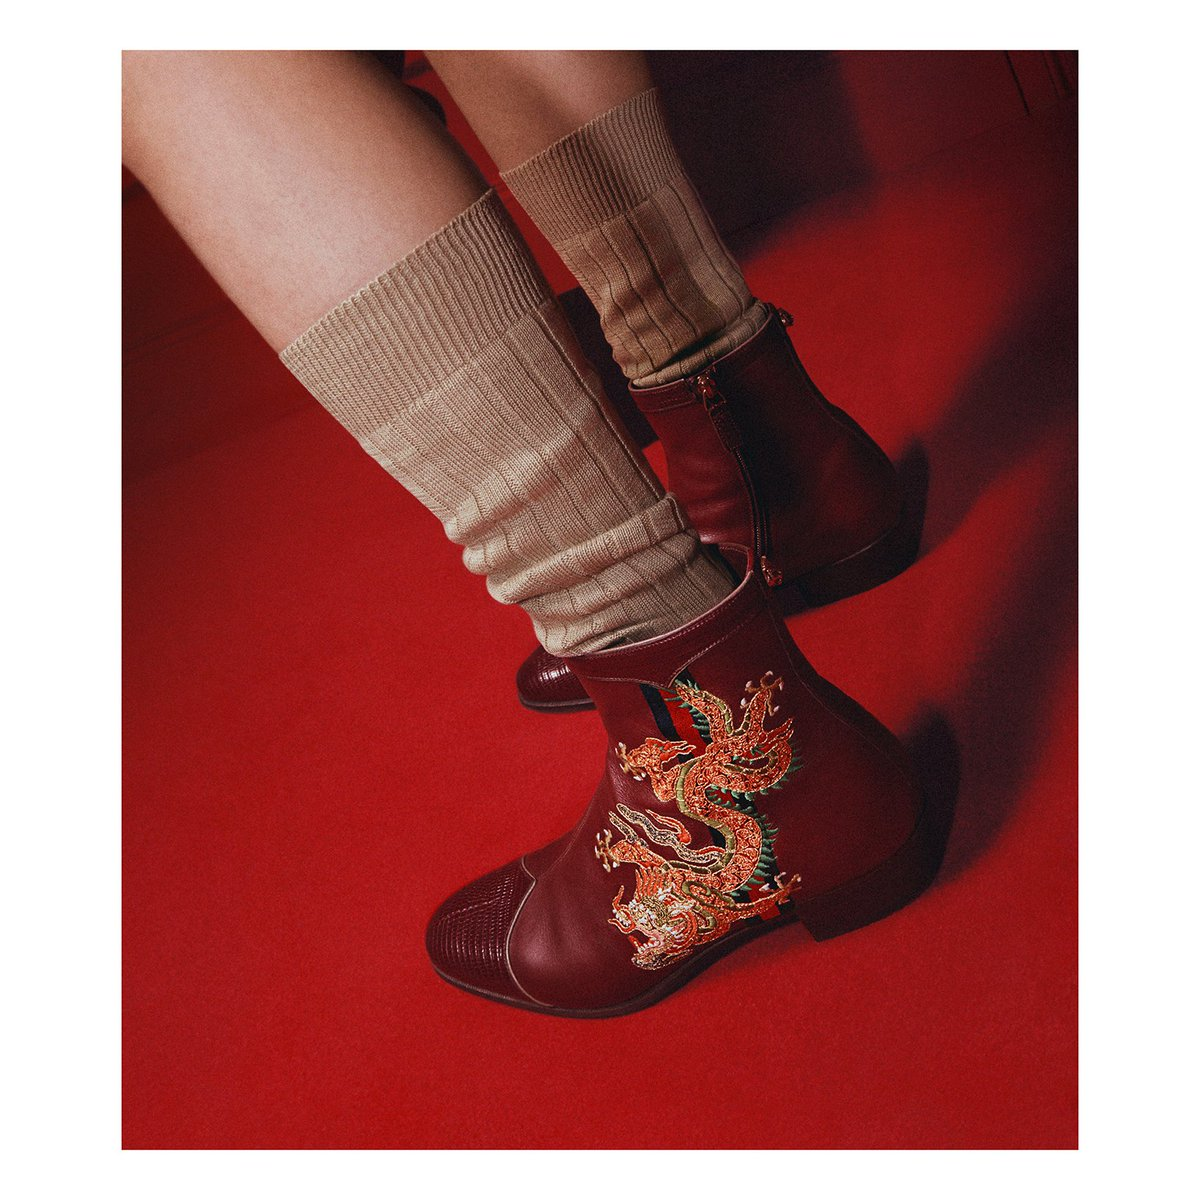 b9c6c5763 Ankle boots from #GucciCruise18 leather featuring the Web stripe and an  embroidered dragon.